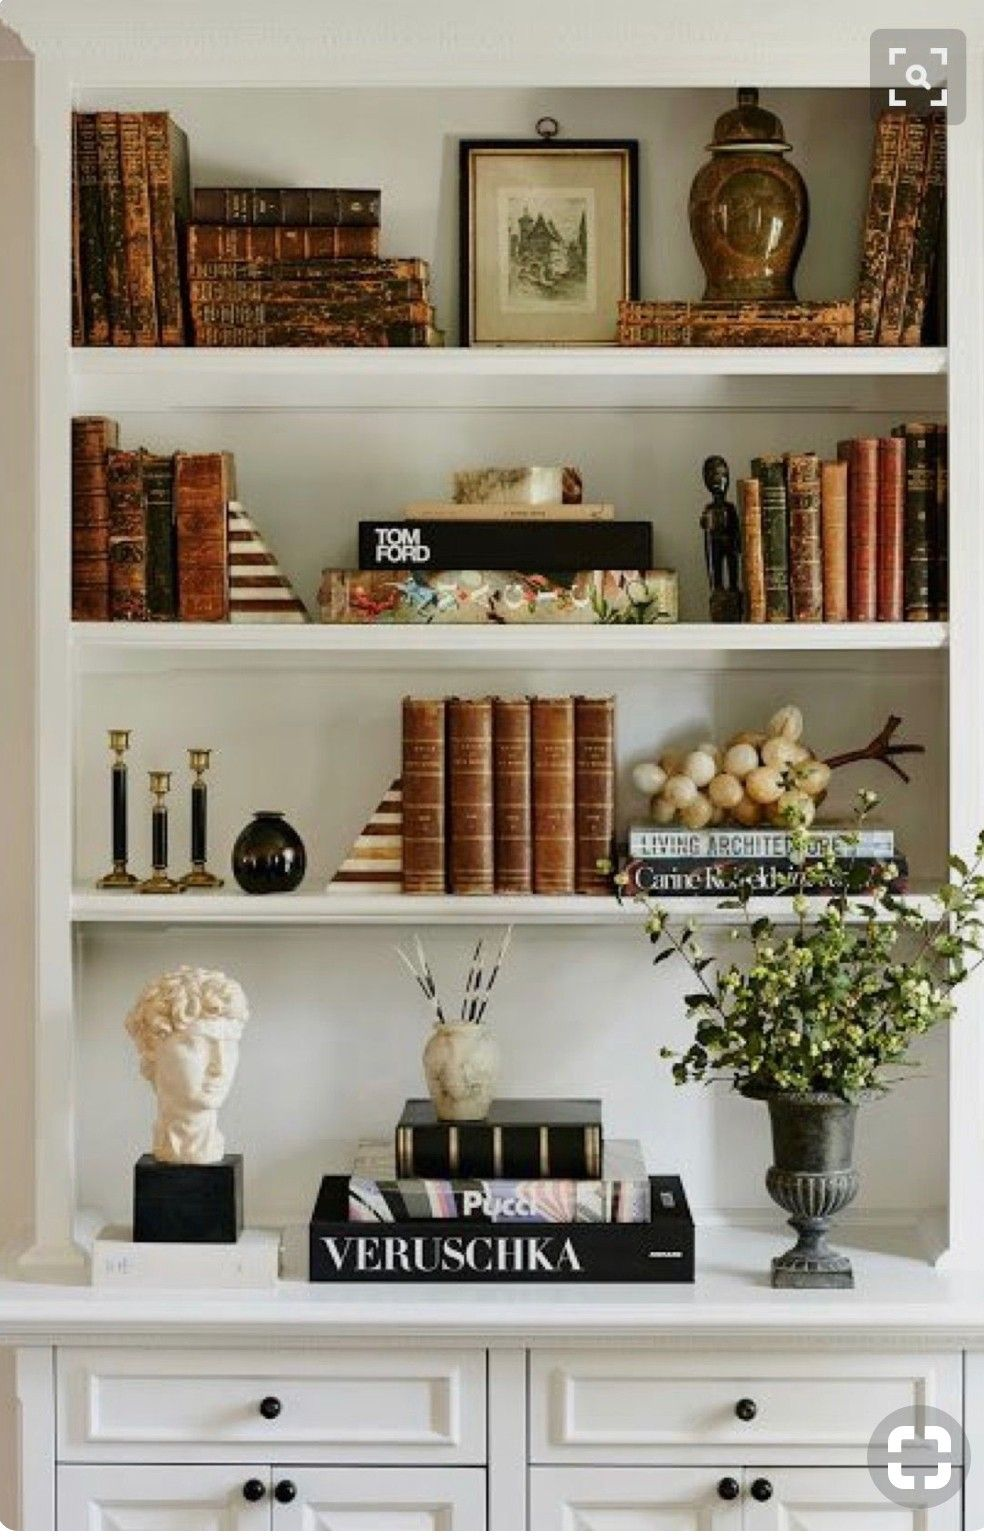 pin by sherry allnutt on library study ideas in 2018 kitchen decor rh pinterest com